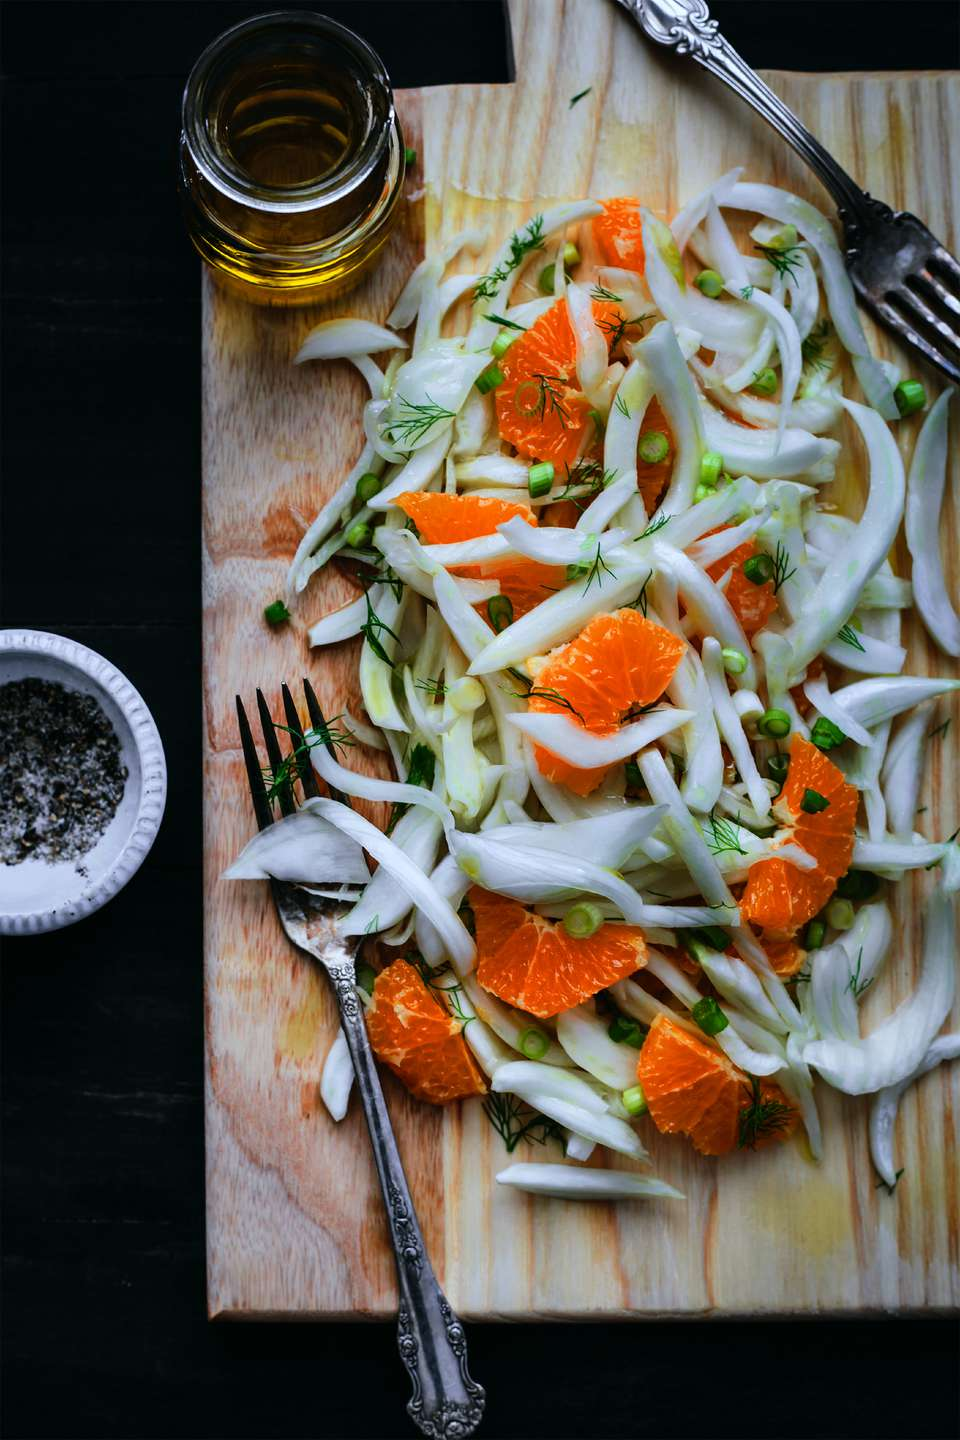 Sliced fennel, scallions, and blood orange